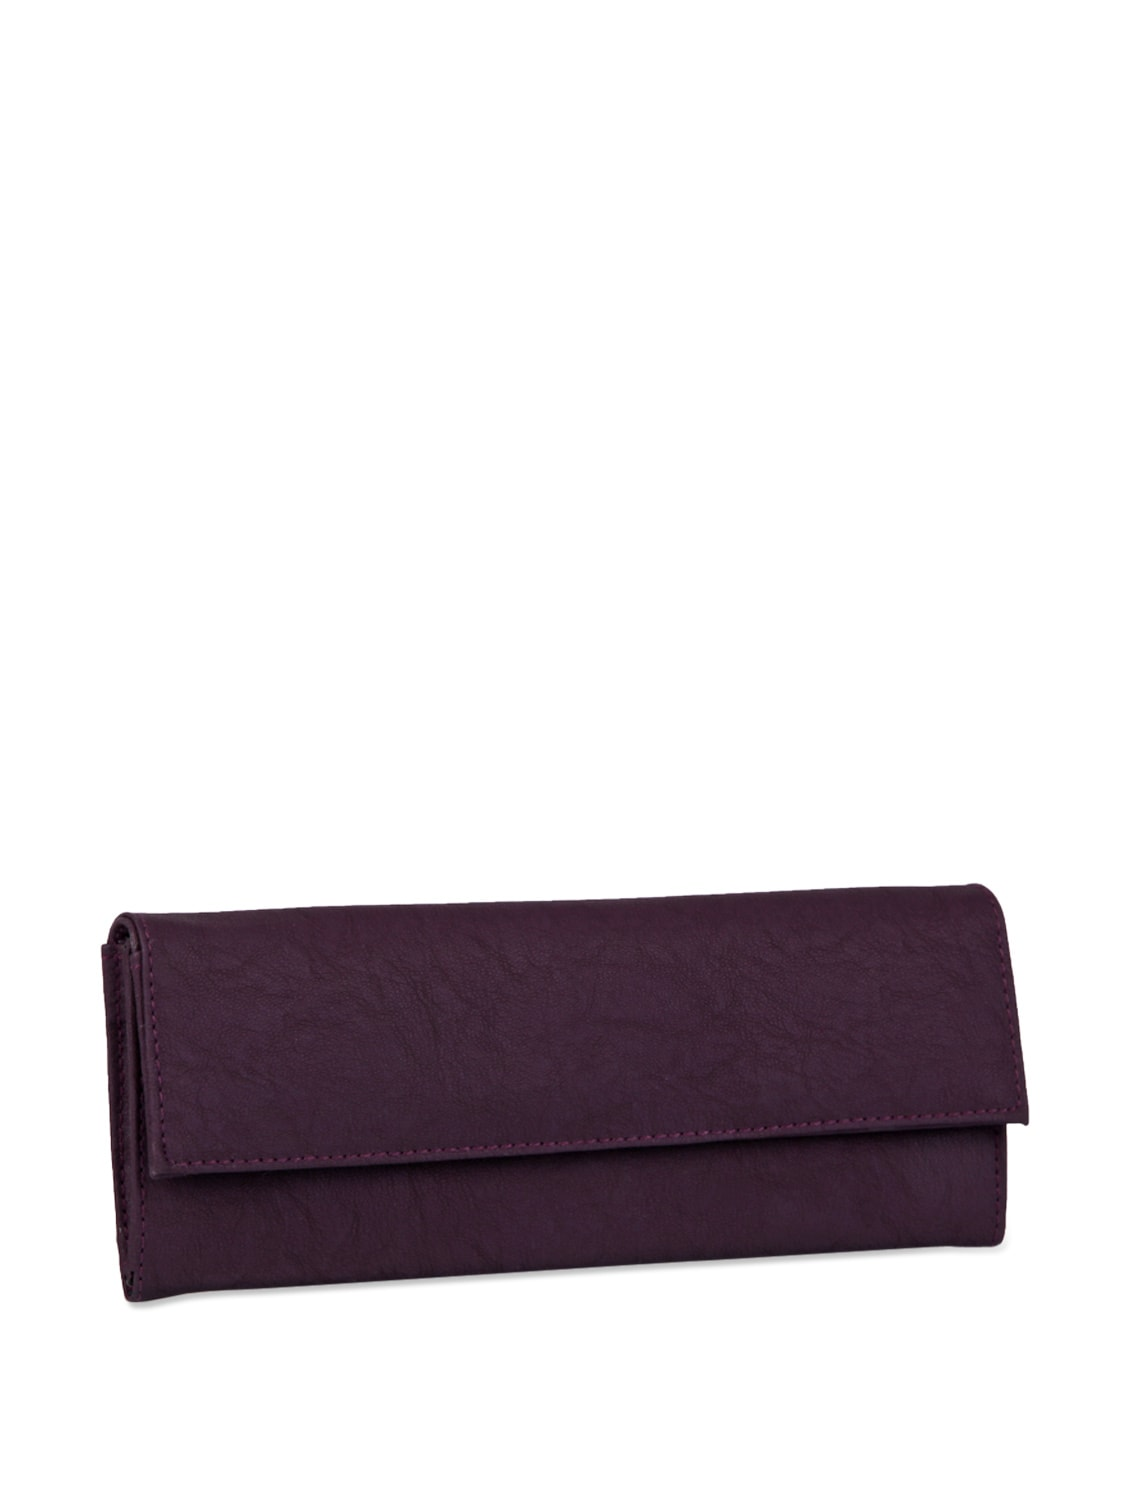 Classic Wine Wallet - ALESSIA